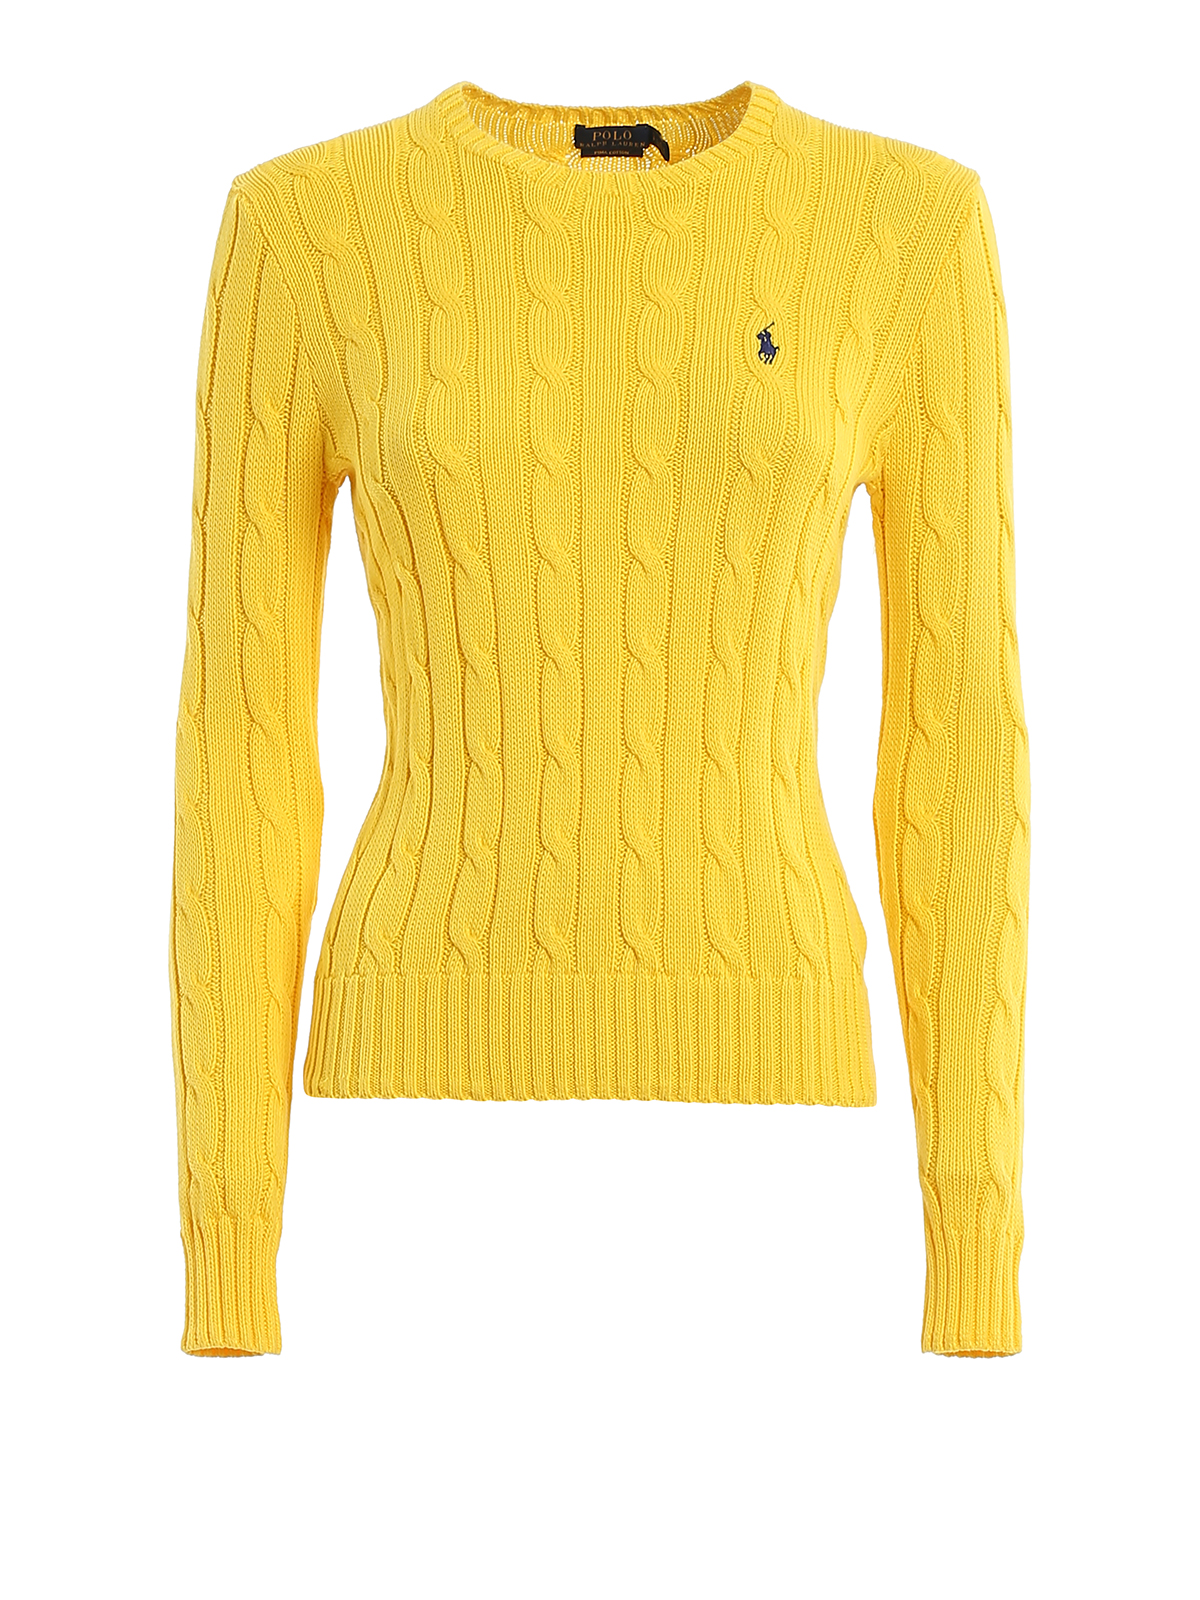 Polo Ralph Lauren YELLOW TWIST KNIT COTTON SWEATER